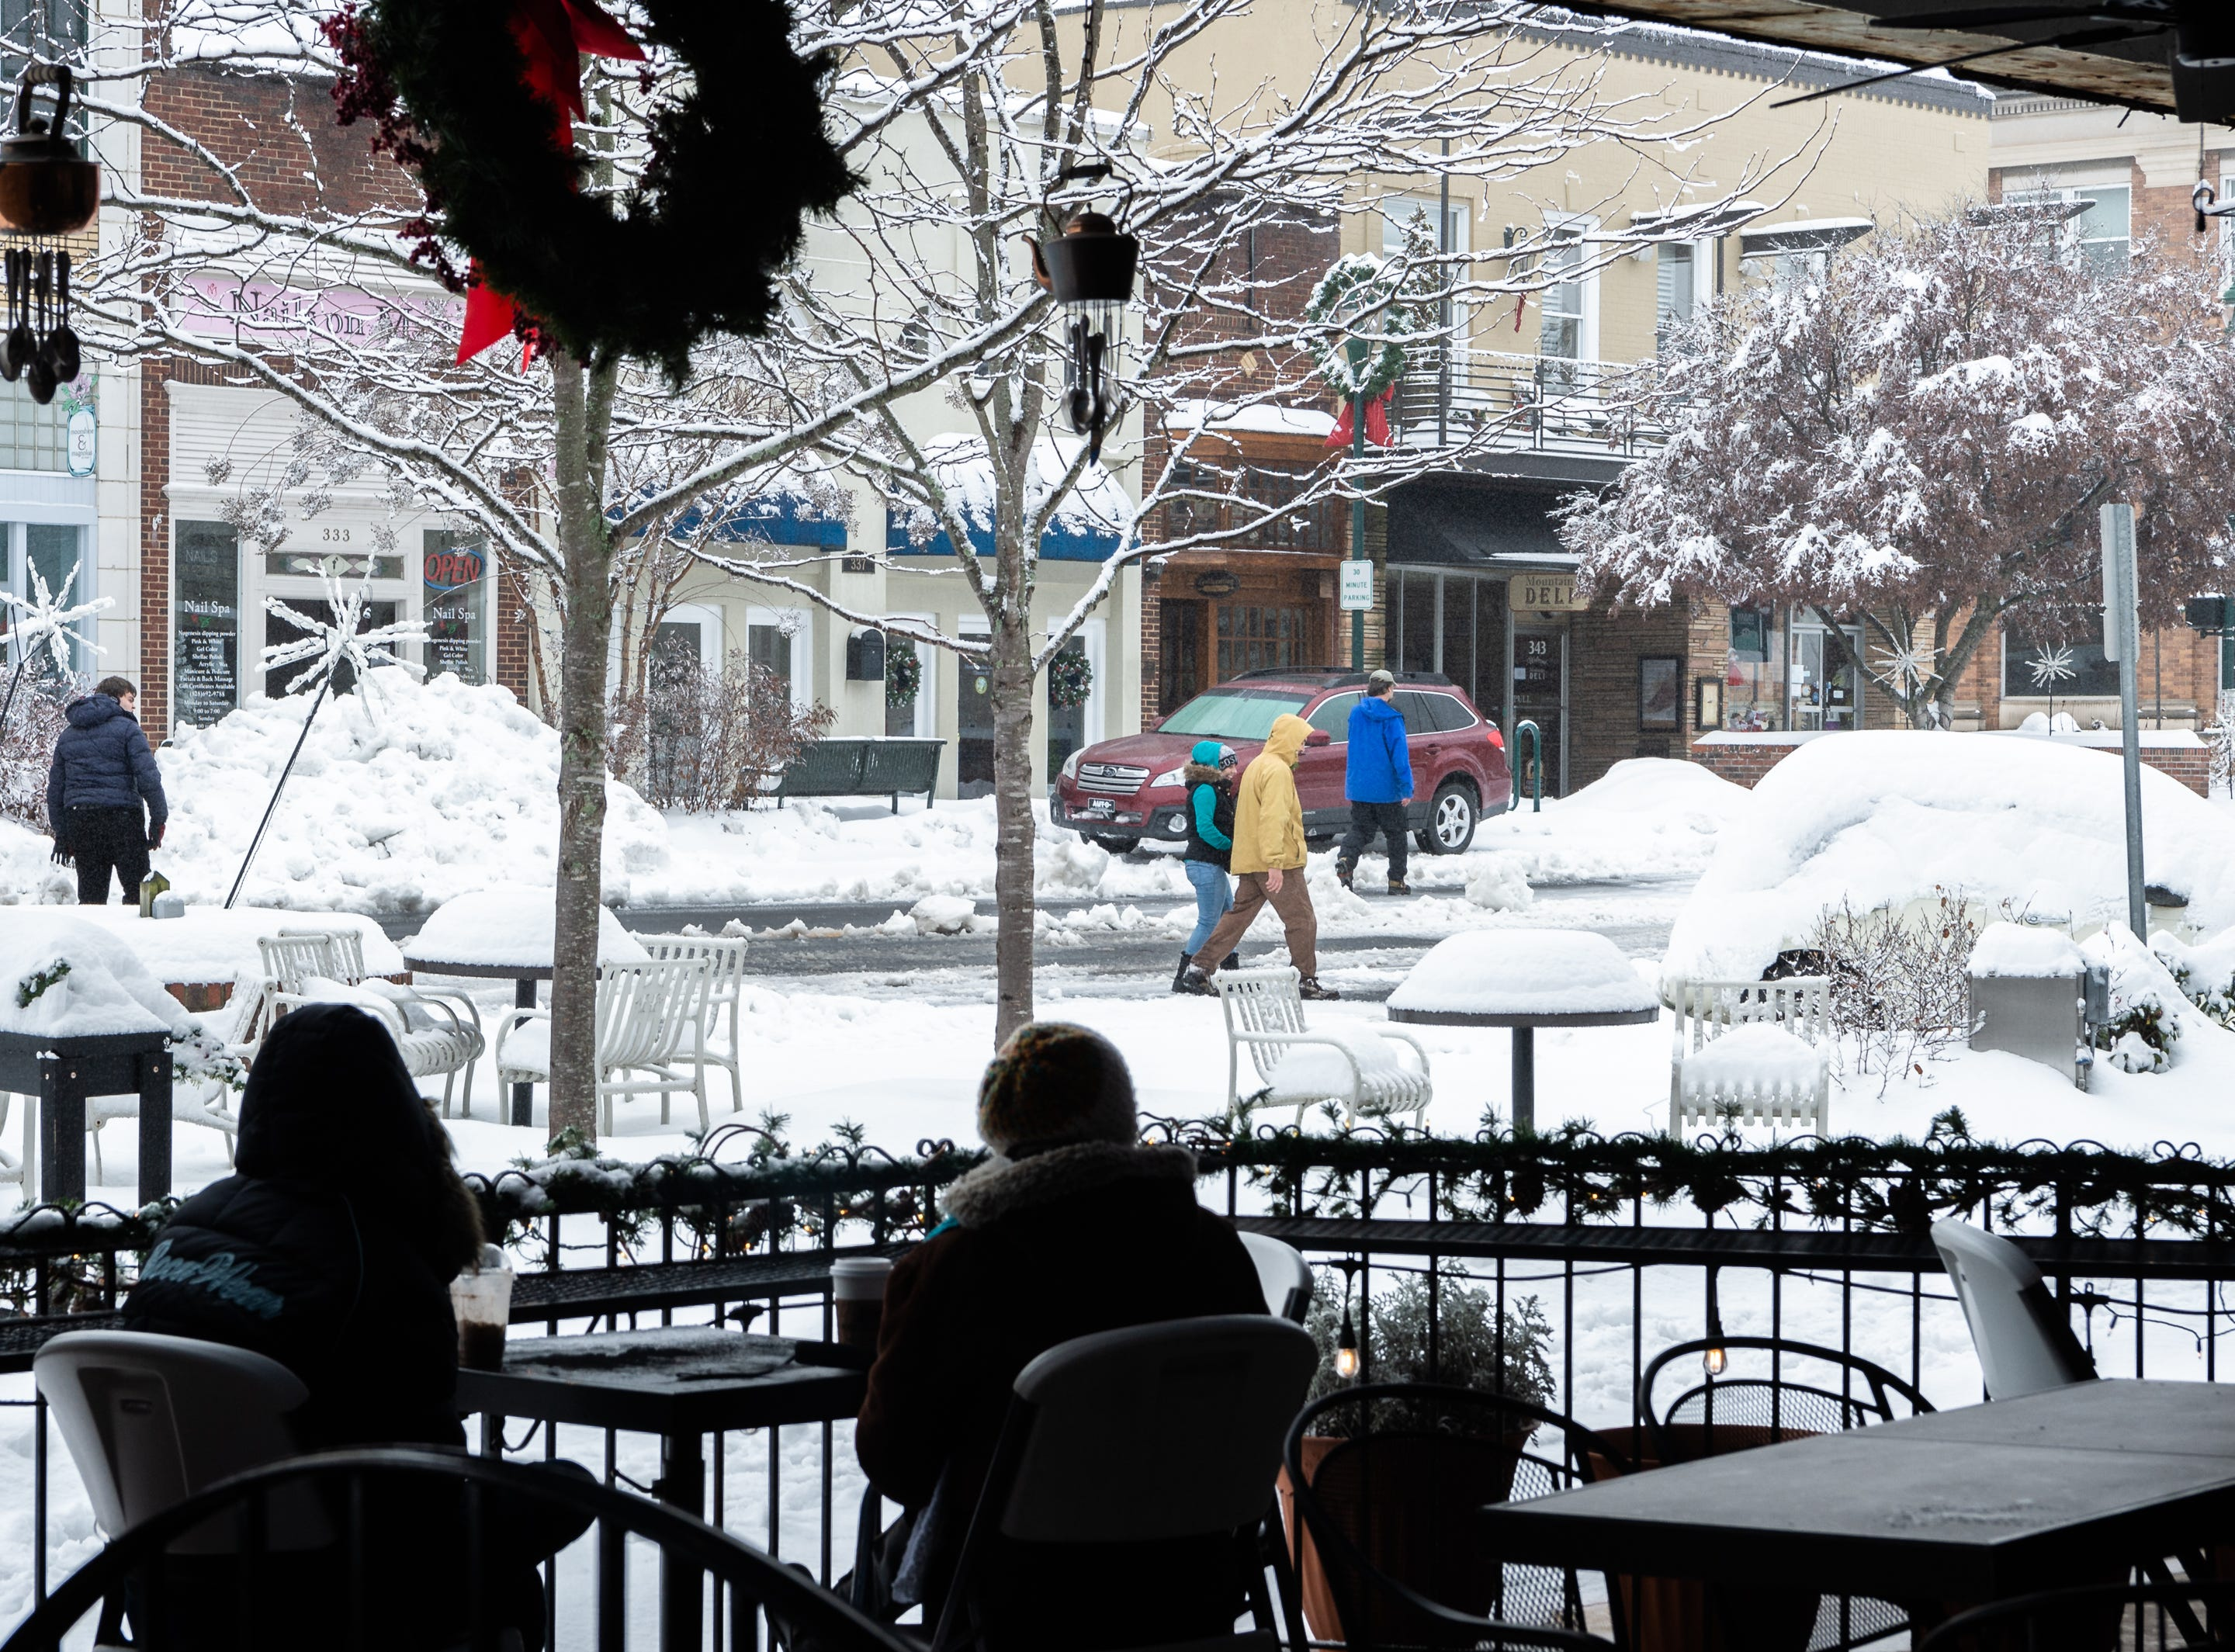 Patrons sit on the patio at Black Bear Coffee Co. as pedestrians walk down Main Street in Hendersonville Dec. 9, 2018.